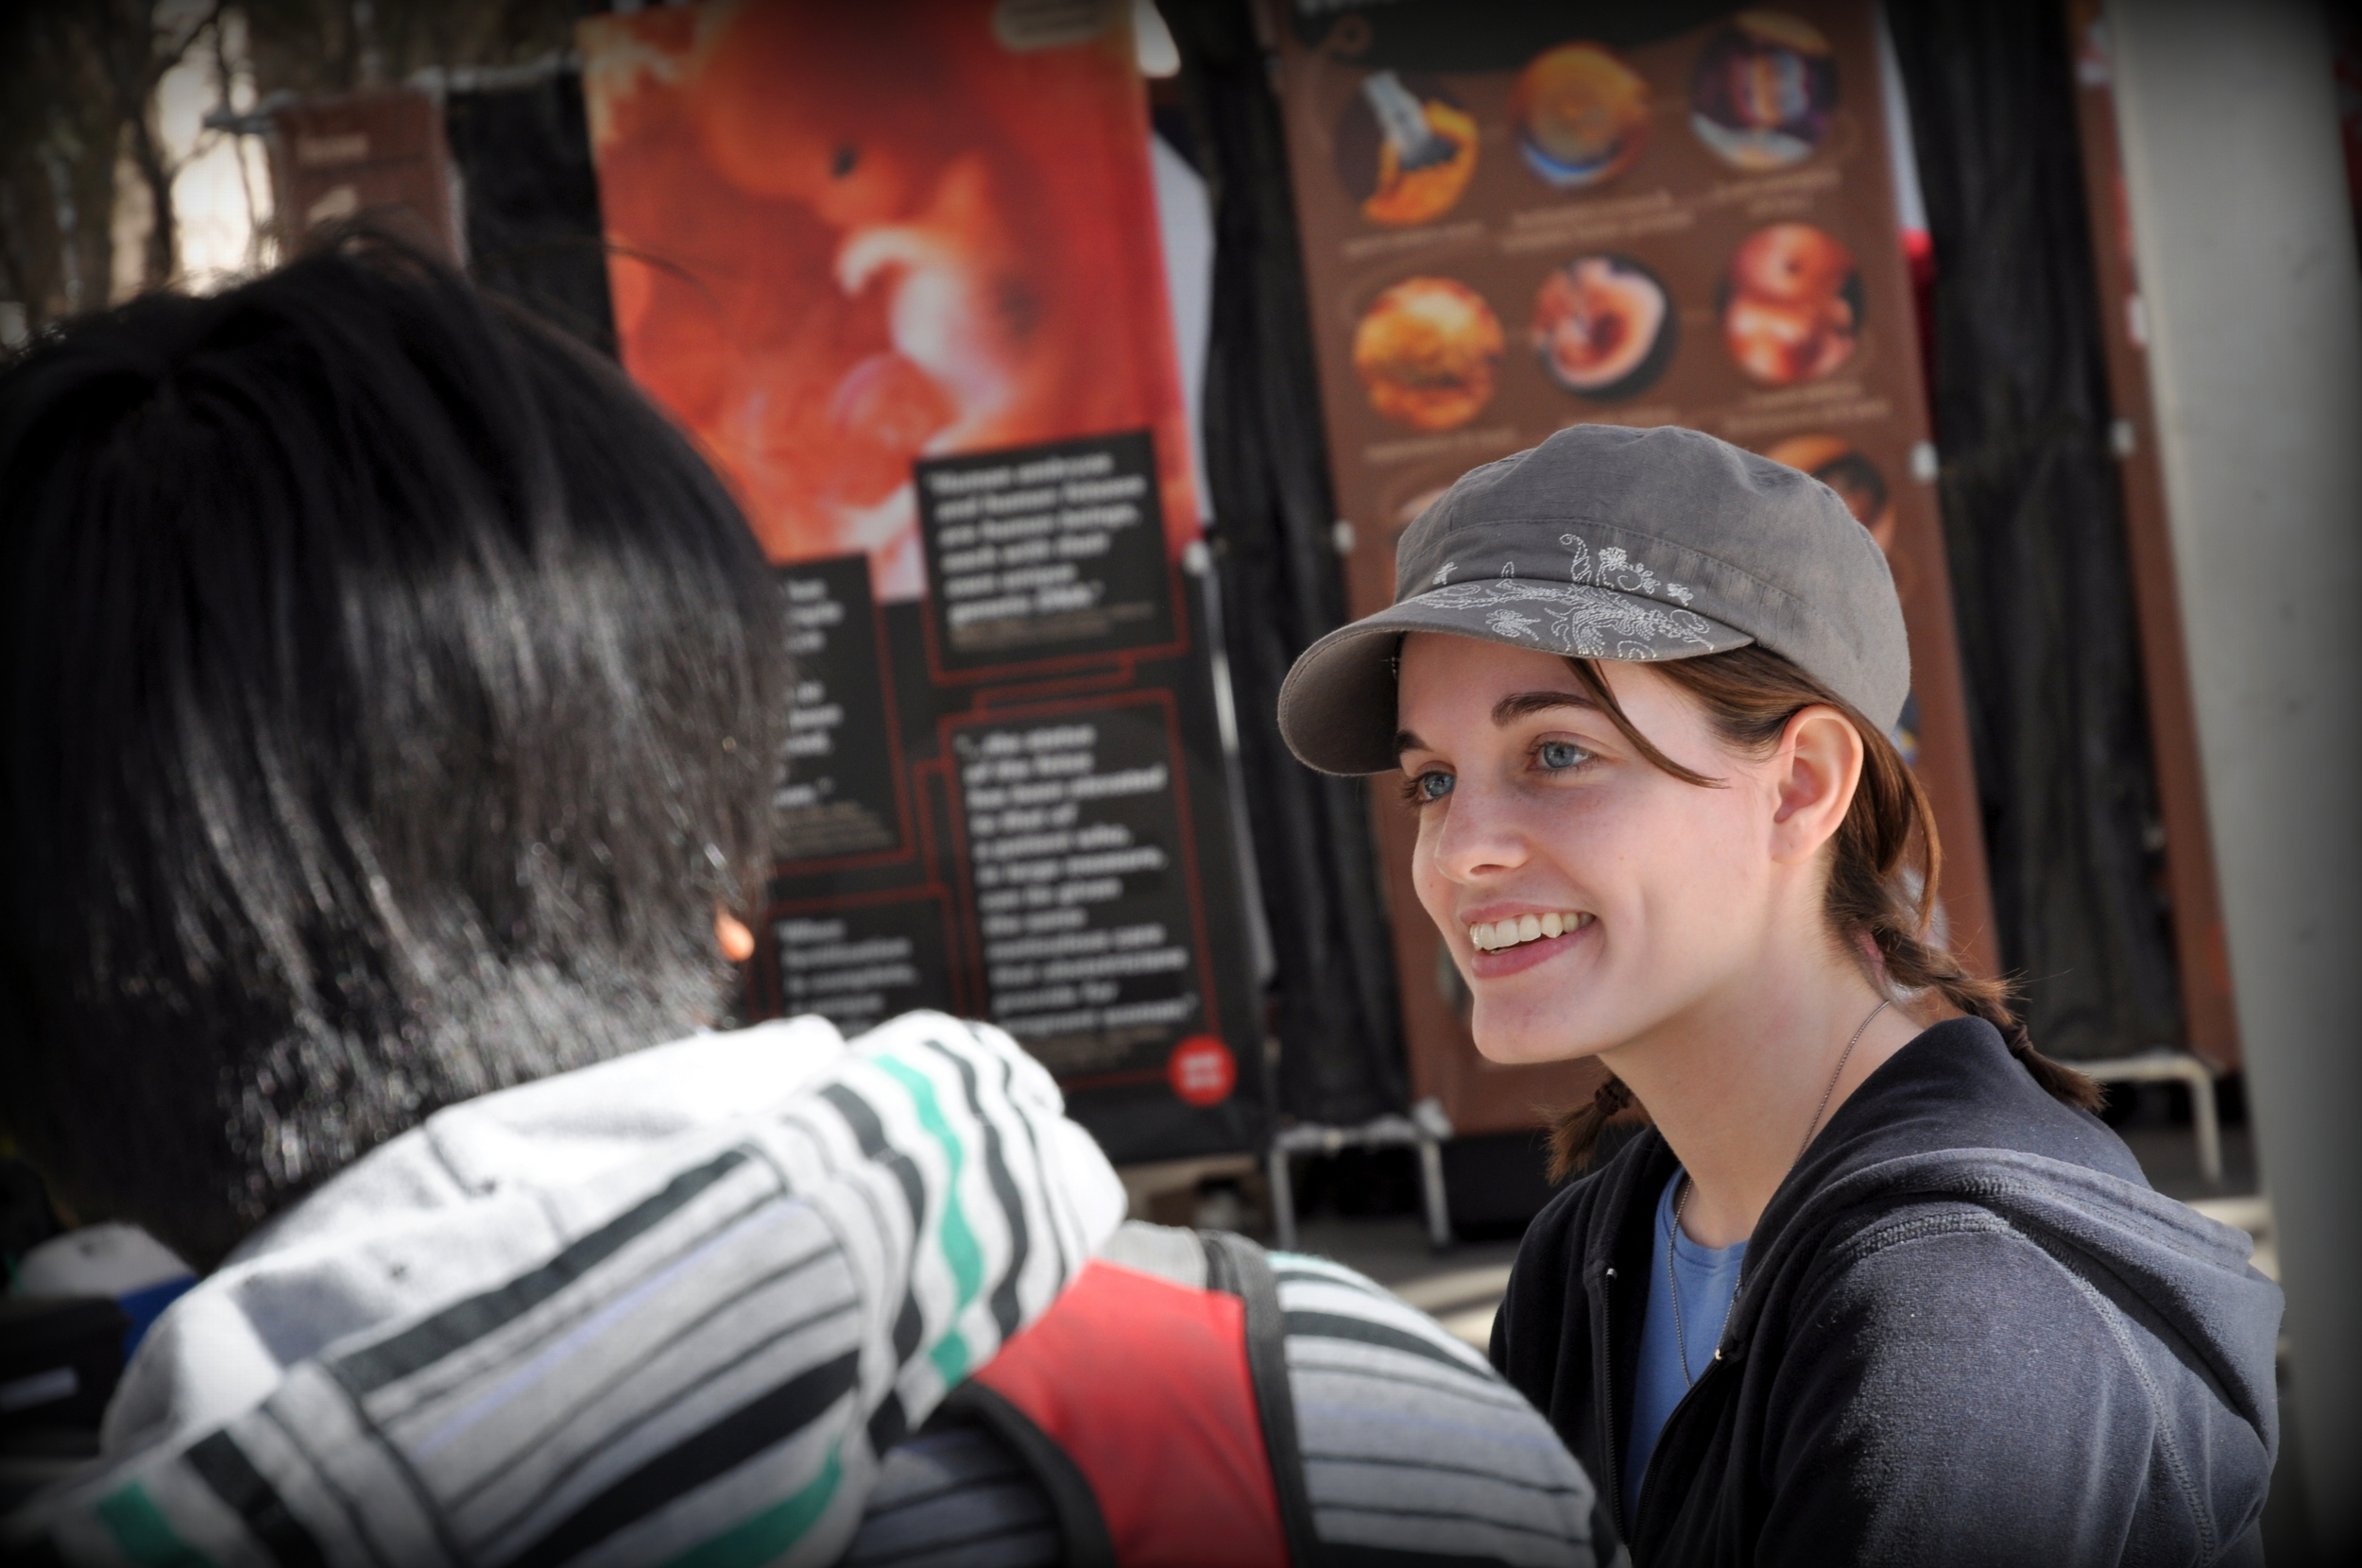 Holly in conversation with a student at JFA's outreach event at Arizona State University (ASU), February 2014